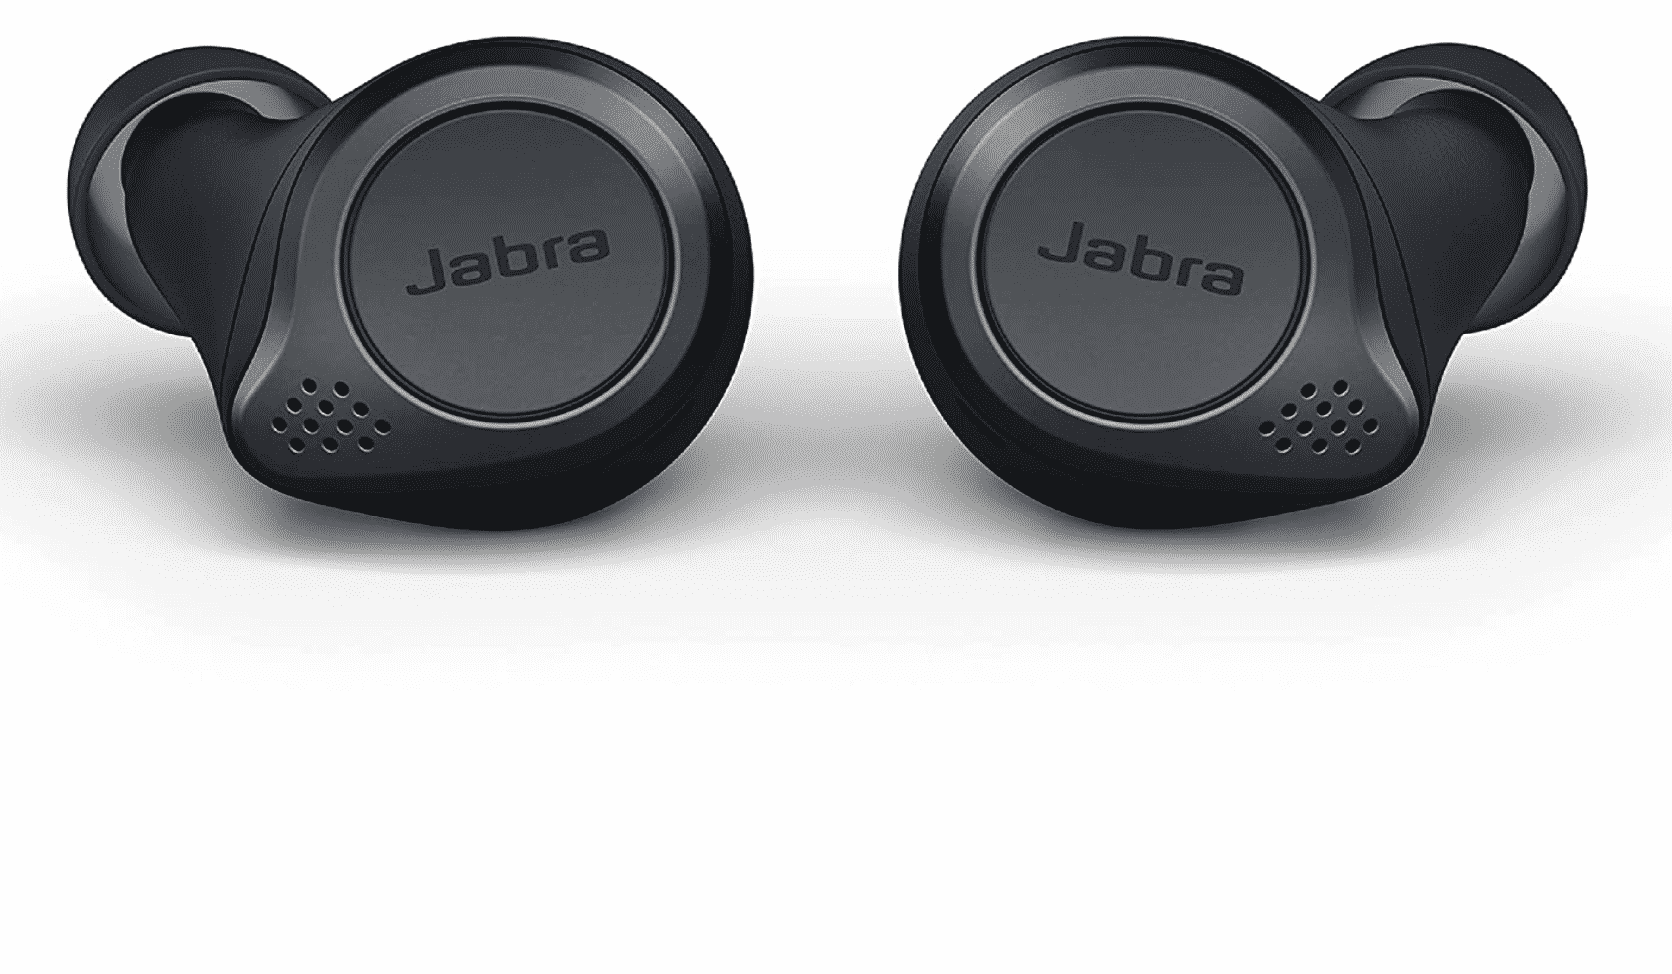 Score a Jabra Elite 75t Wireless Earbuds with Wireless Charging Case at $50 Off